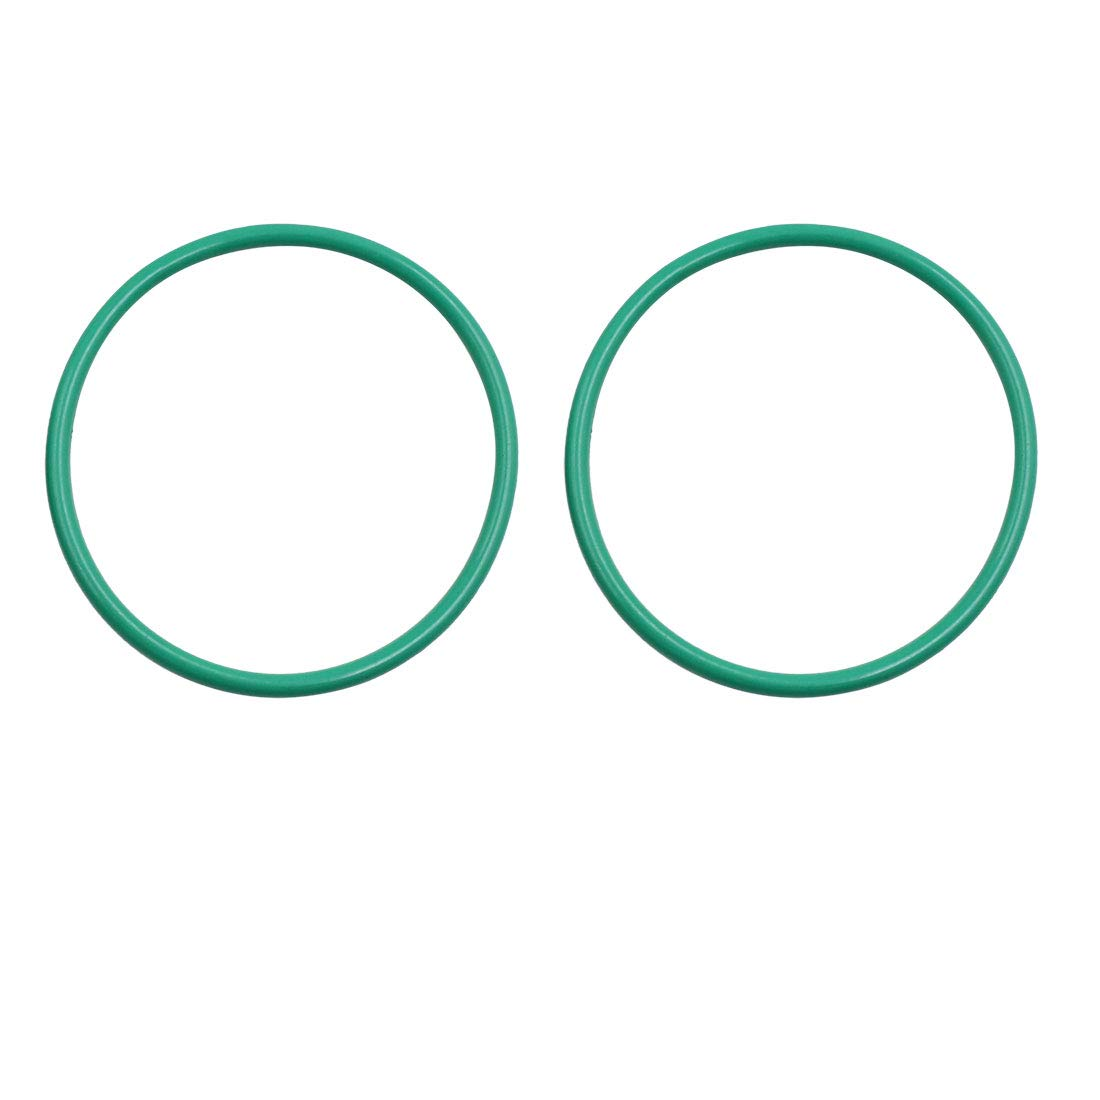 X AUTOHAUX 5pcs Green Rubber O-Ring Seal Gasket Washer for Car 67mm x 3.5mm